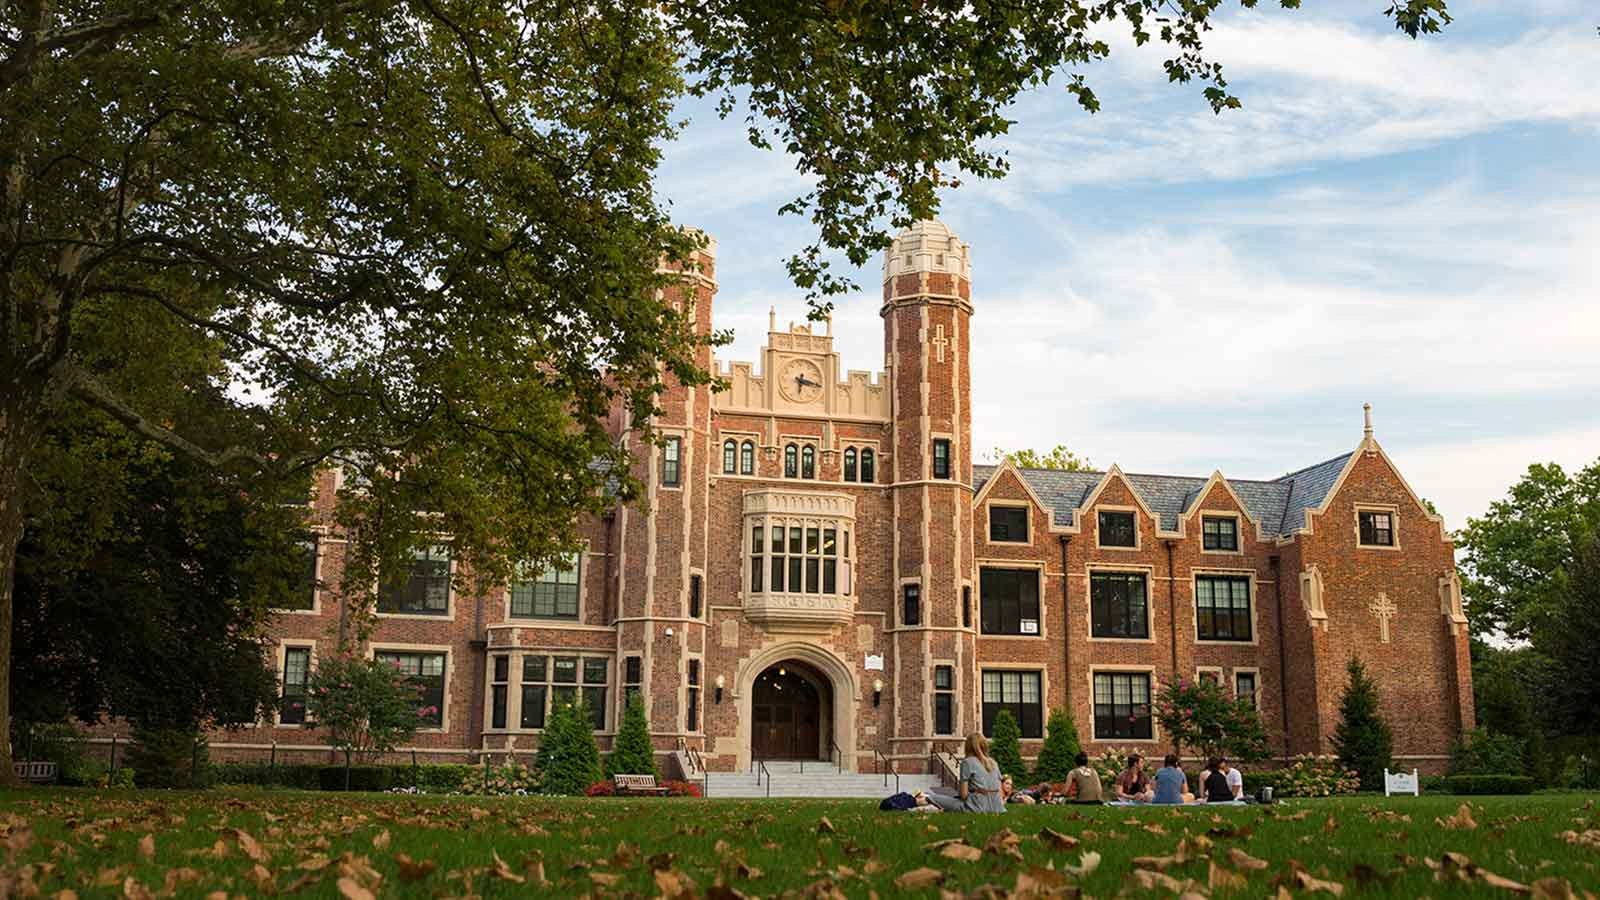 Apply To Wagner – Admissions In College Of Staten Island Starts In Fall